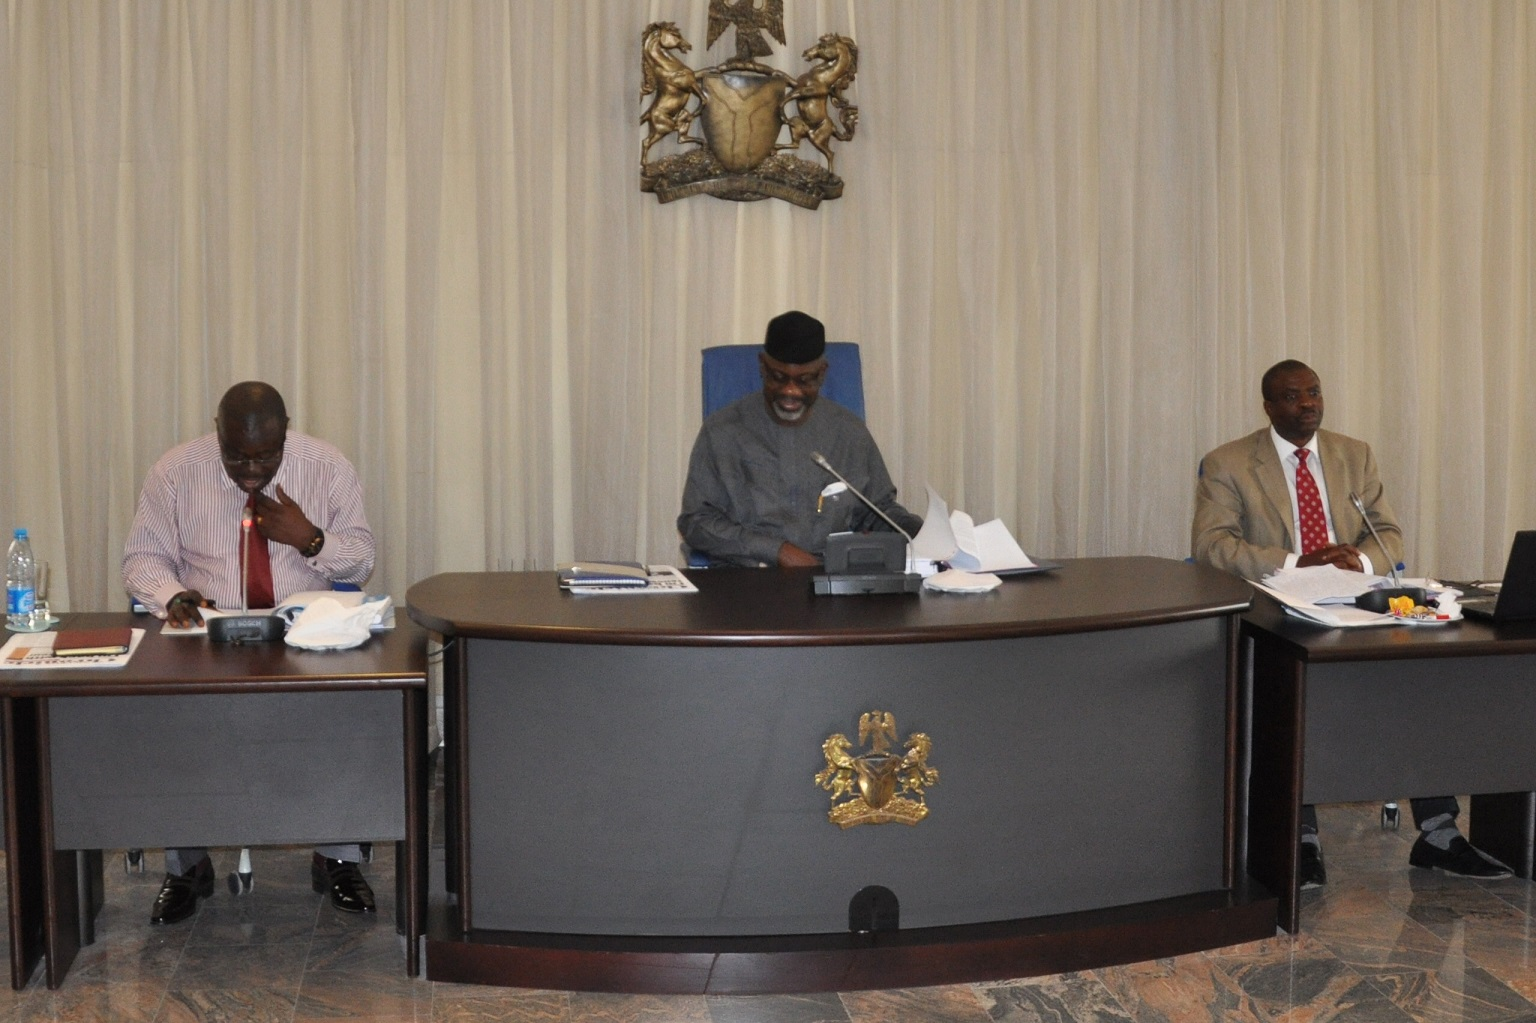 Governor Liyel Imoke (center) flanked by Efiok Cobham, Deputy Governor and Mike Aniah, SSG in a State Executive Council Meeting (file picture)